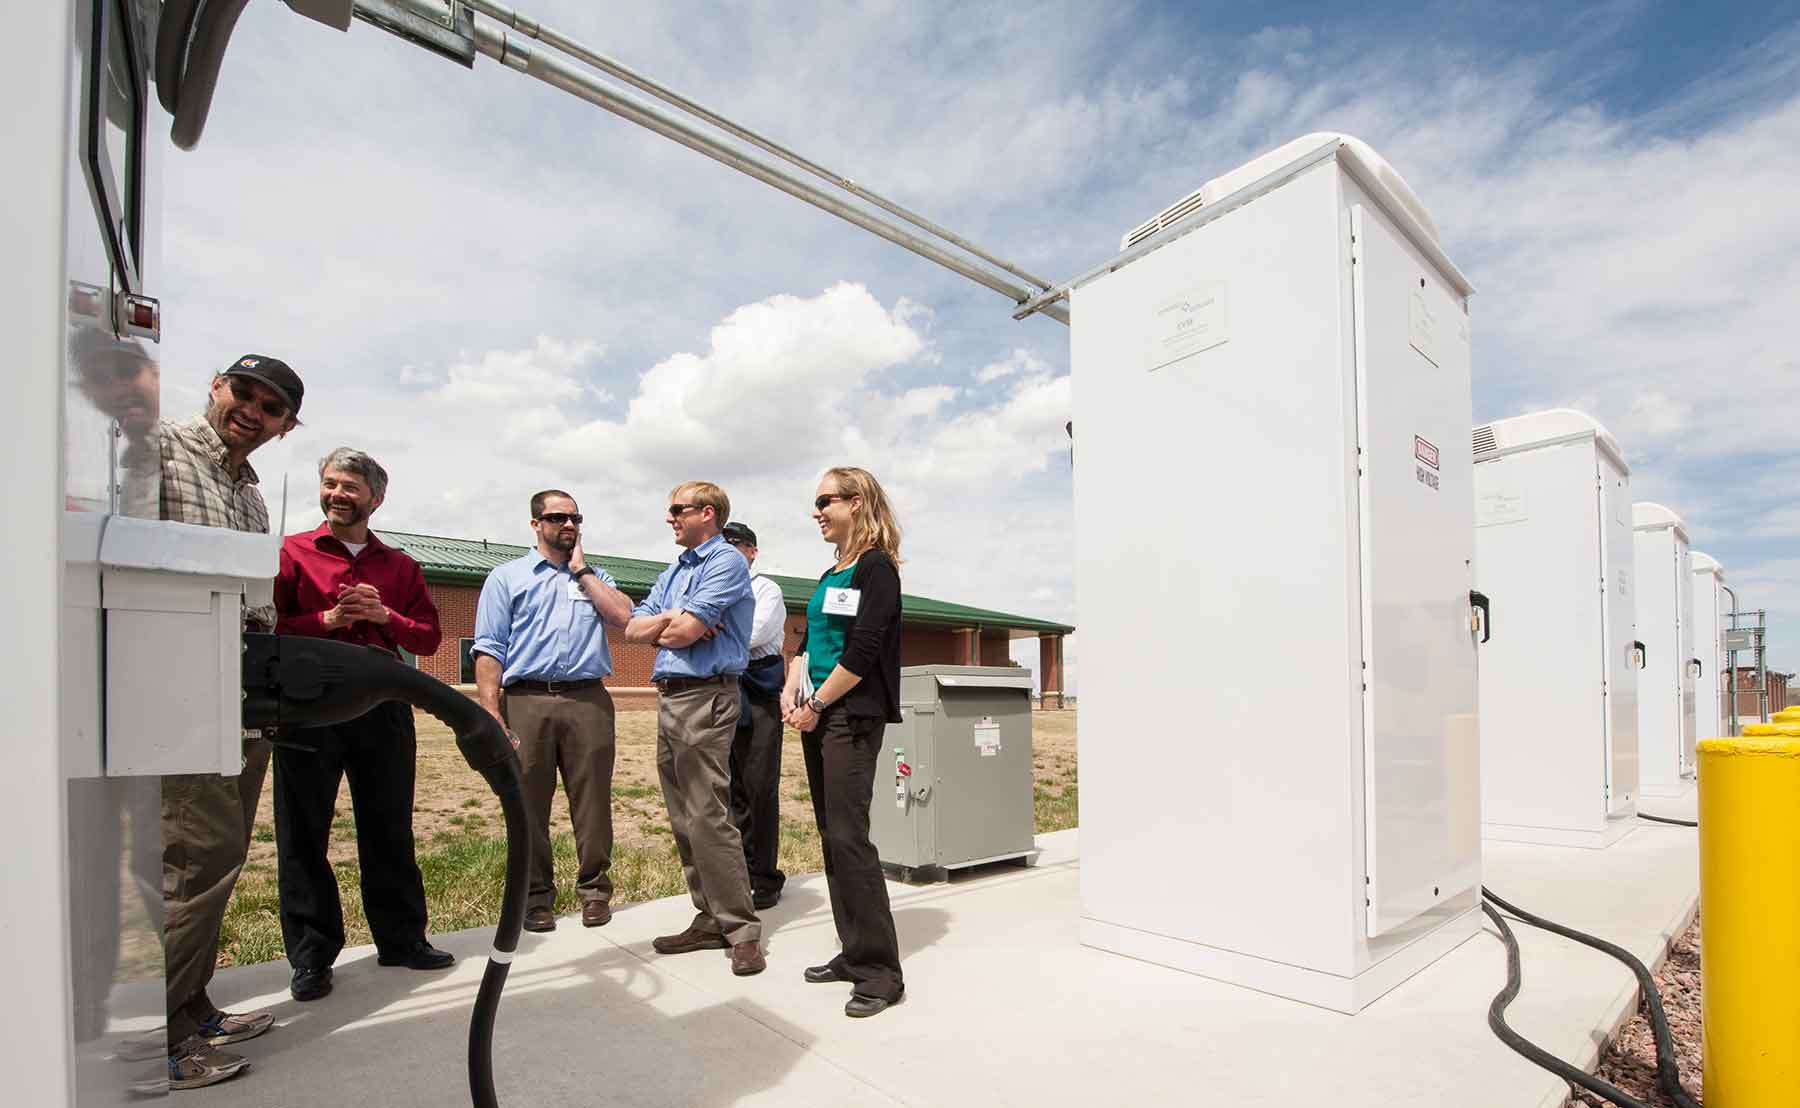 A group of researchers from NREL examines a piece of equipment at an Army base.